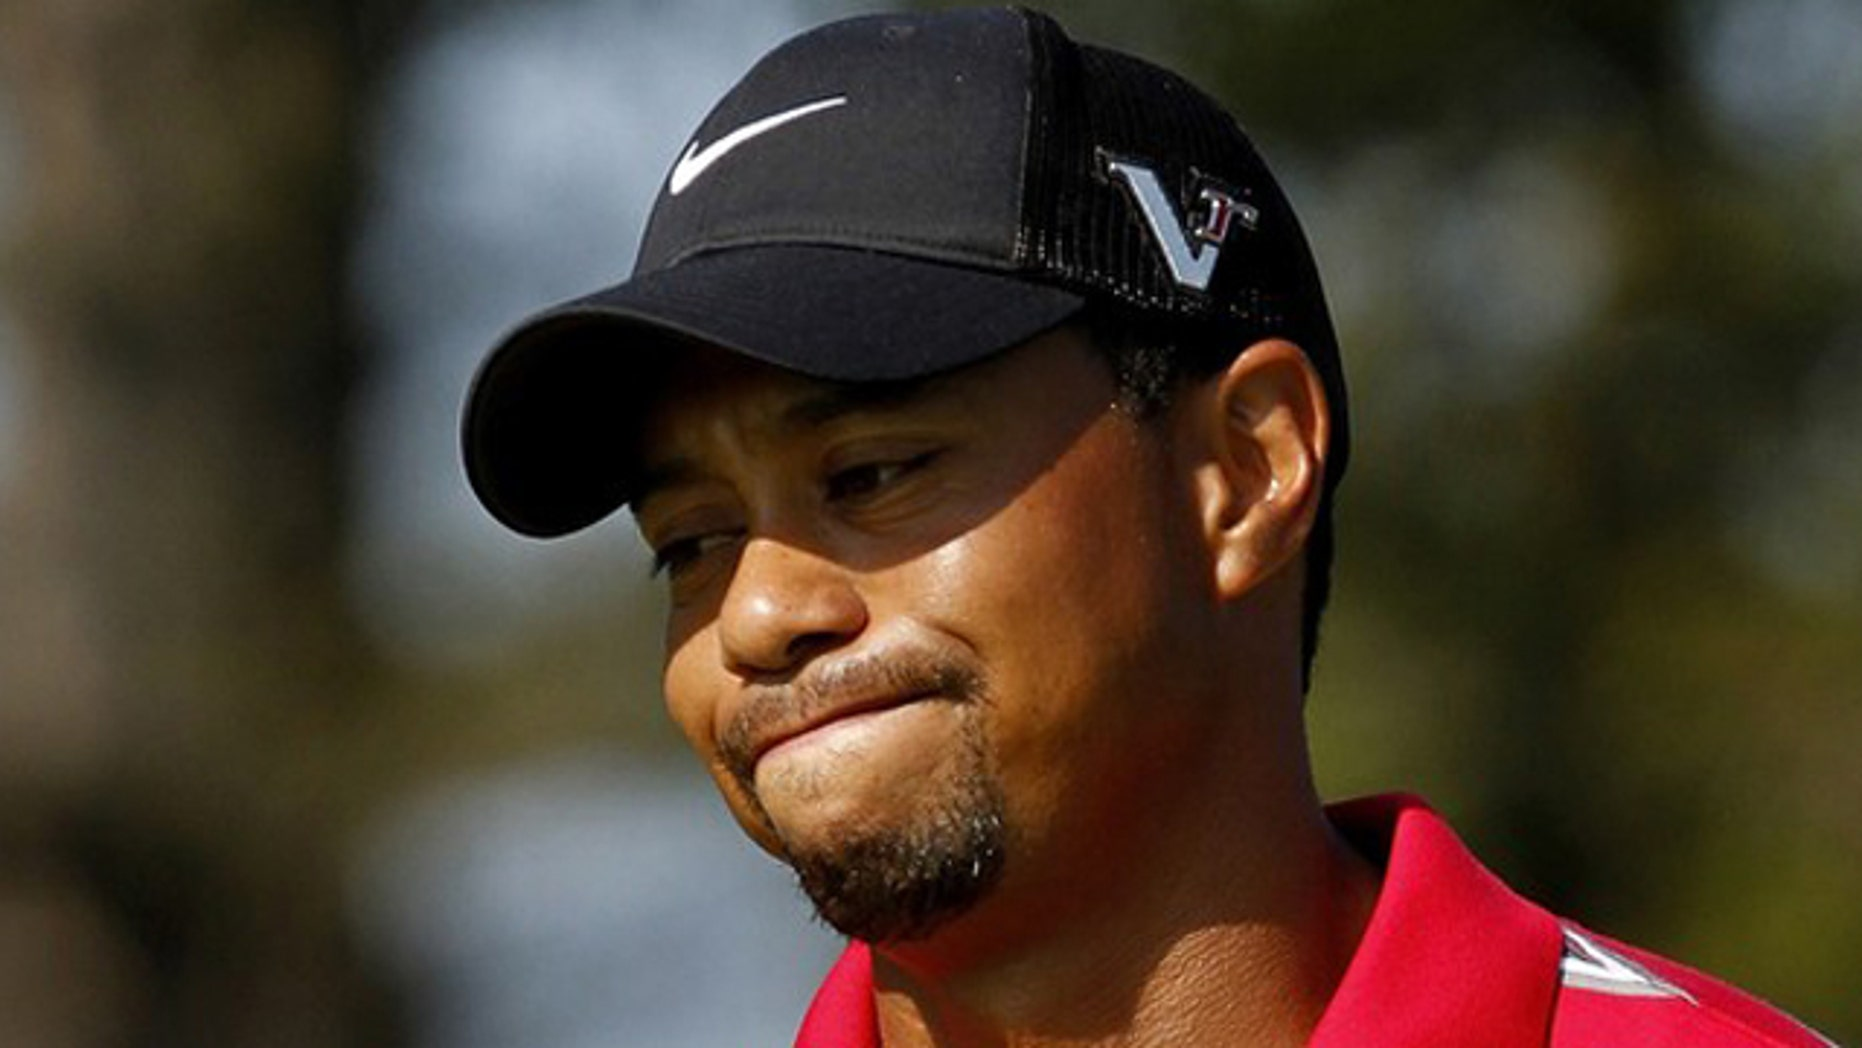 Aug. 8: Tiger Woods reacts after missing a putt during the WGC Bridgestone Invitational golf tournament in Akron, Ohio.